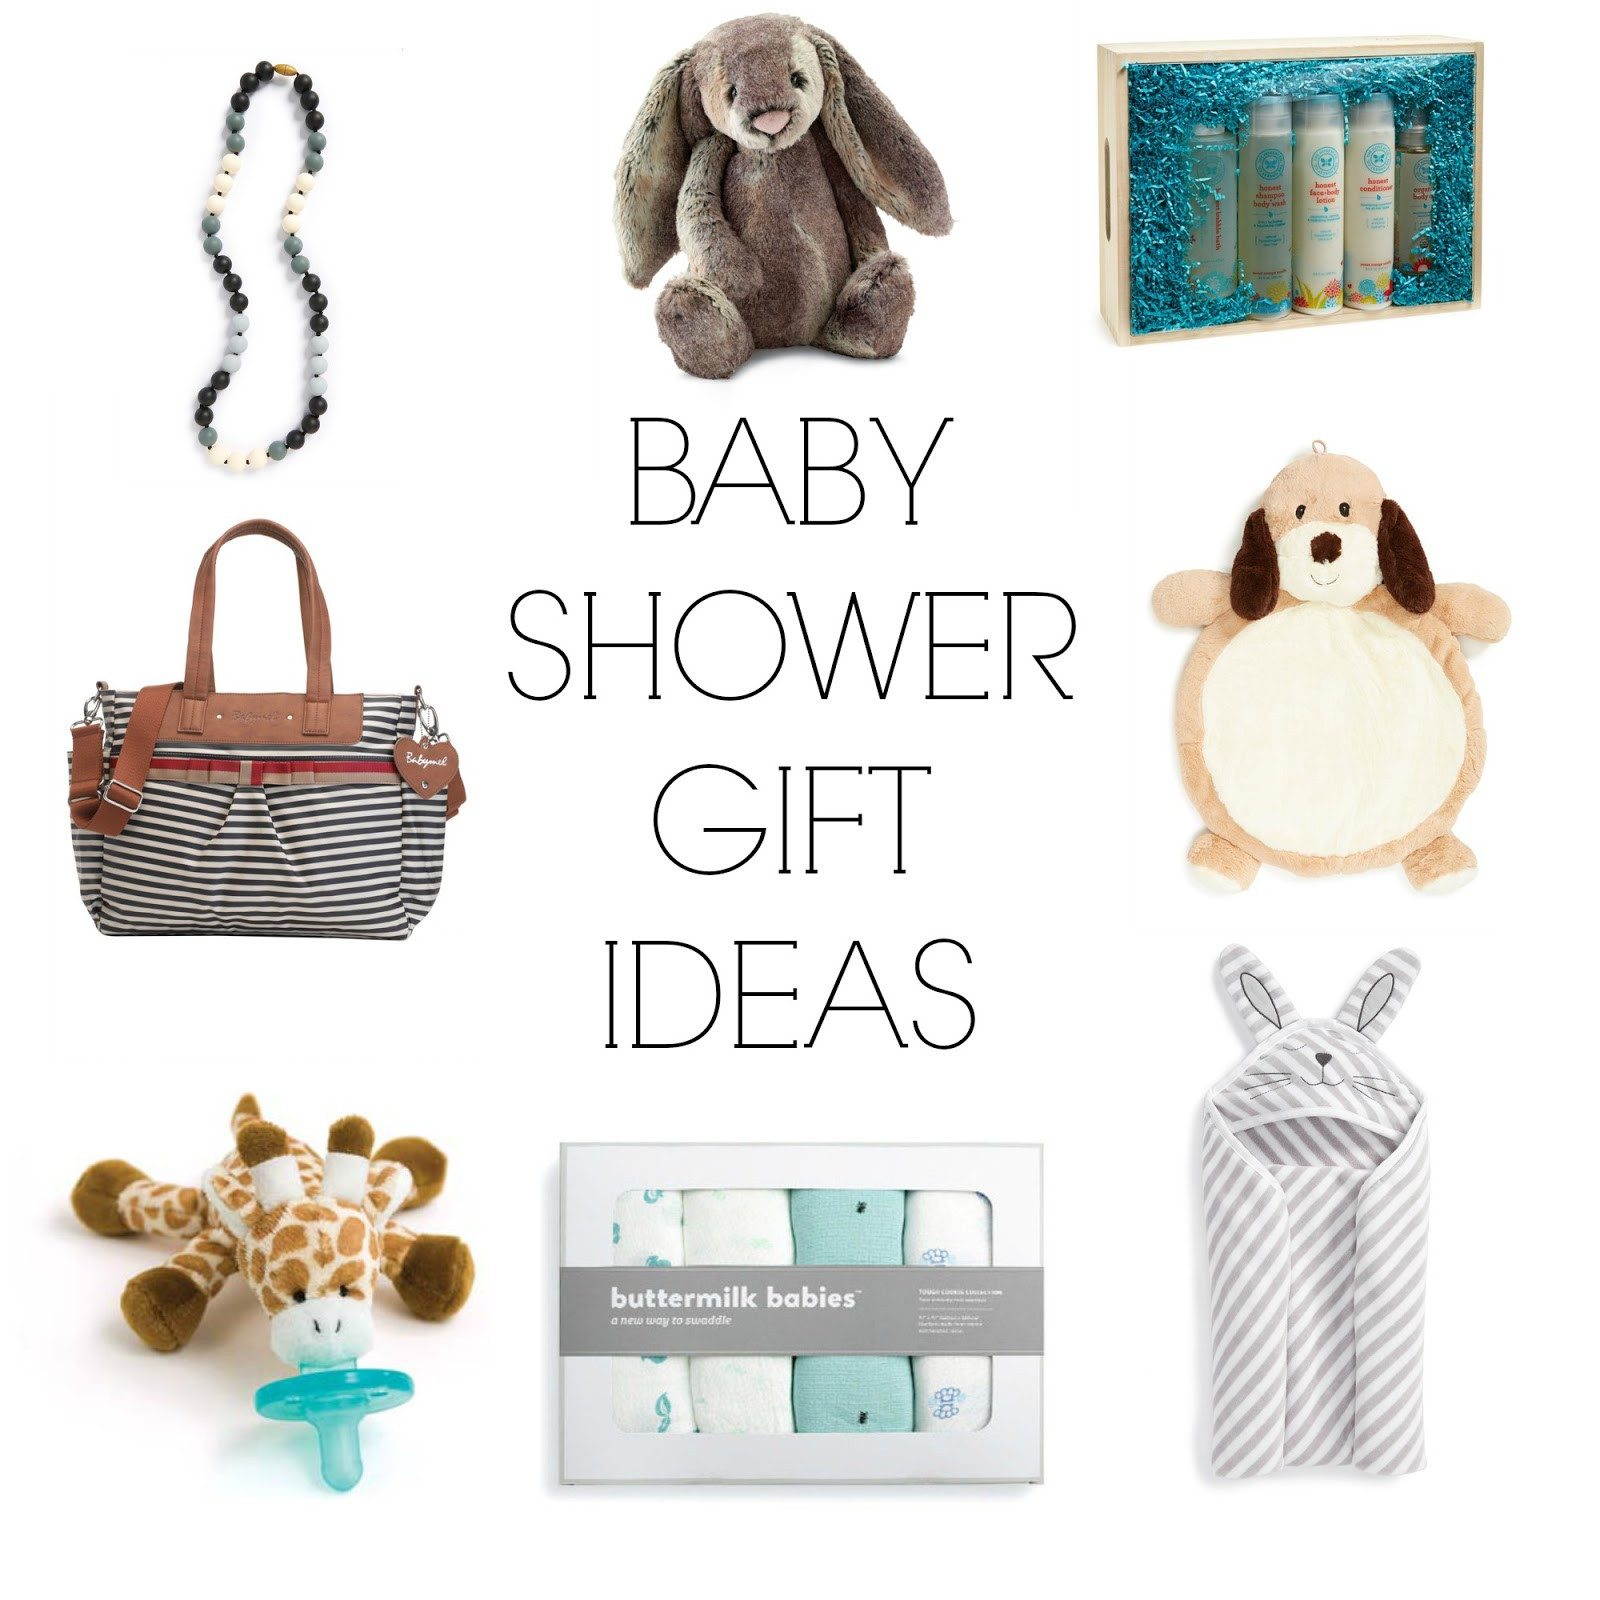 Baby Shower Giveaway Gift Ideas  Baby Shower Gift Ideas Buttermilk Babies Giveaway